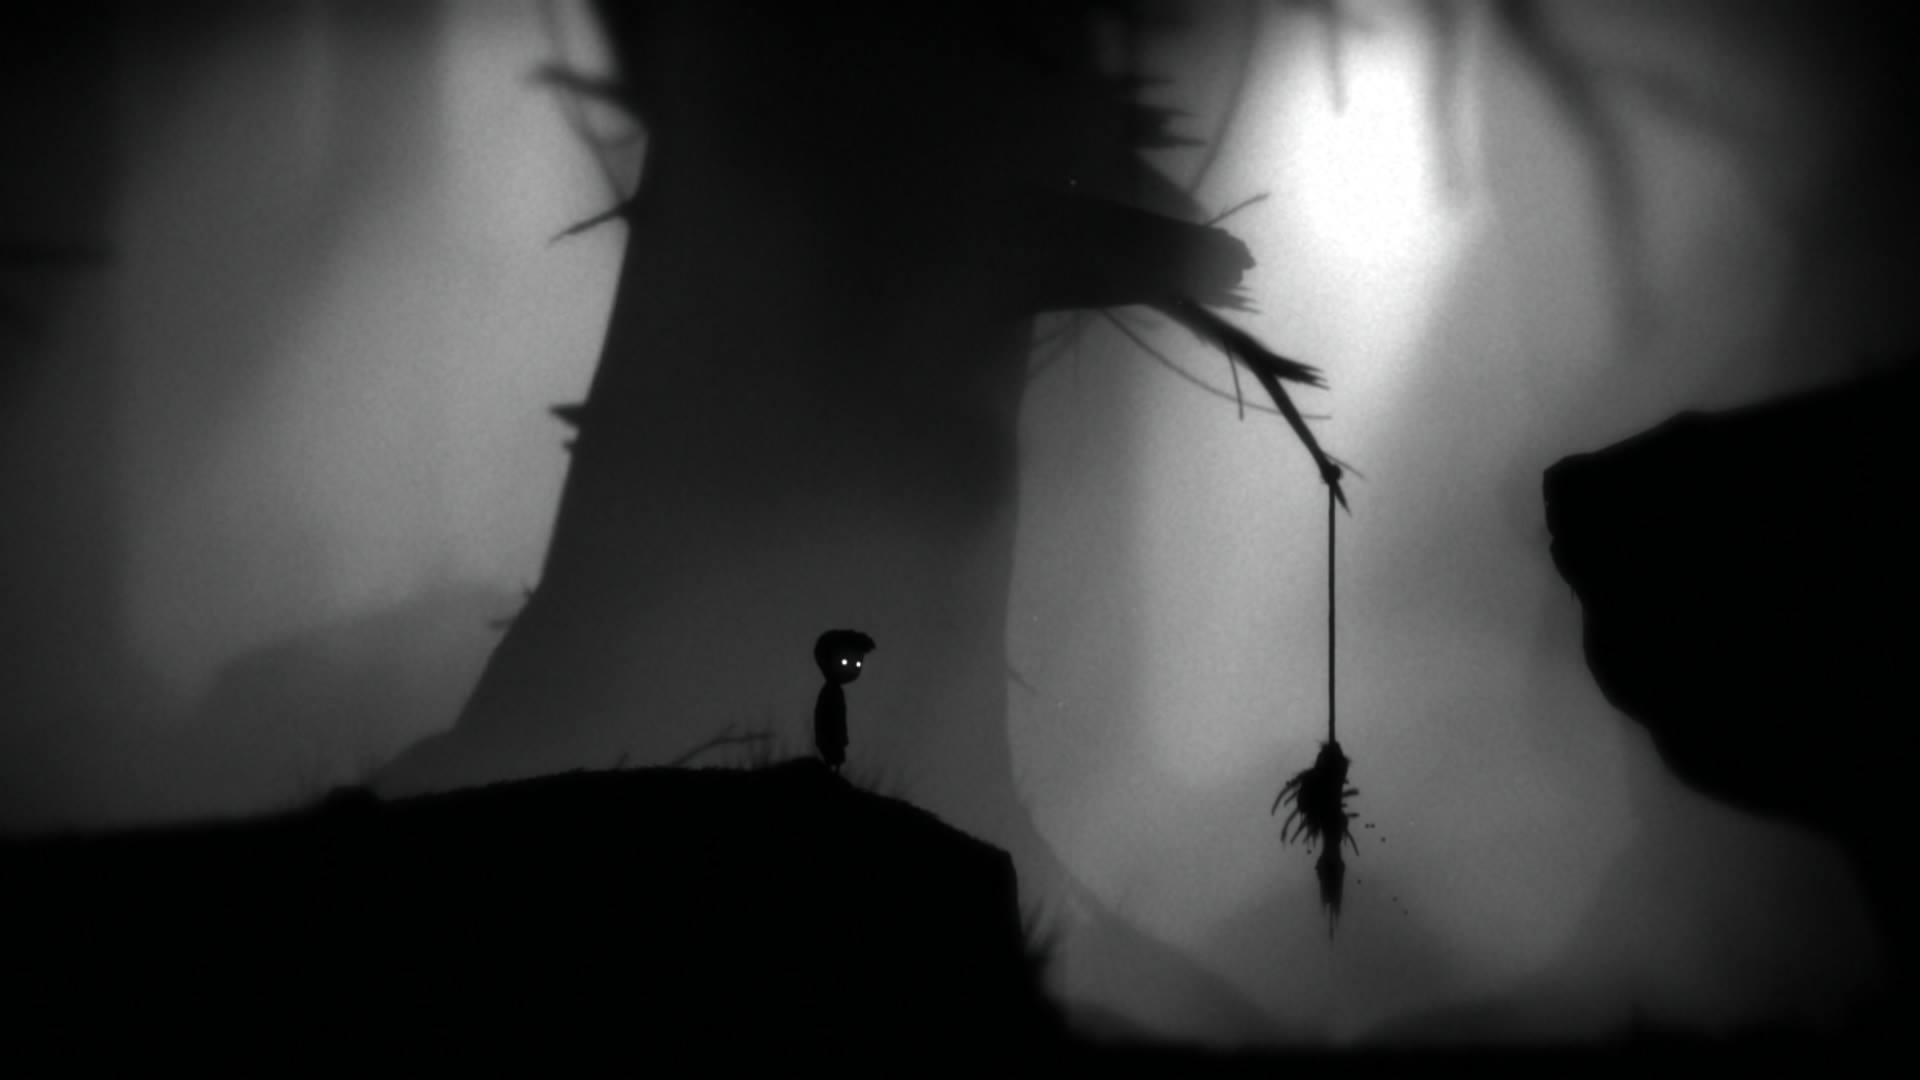 A screenshot from 'Limbo' for the Playstation 4